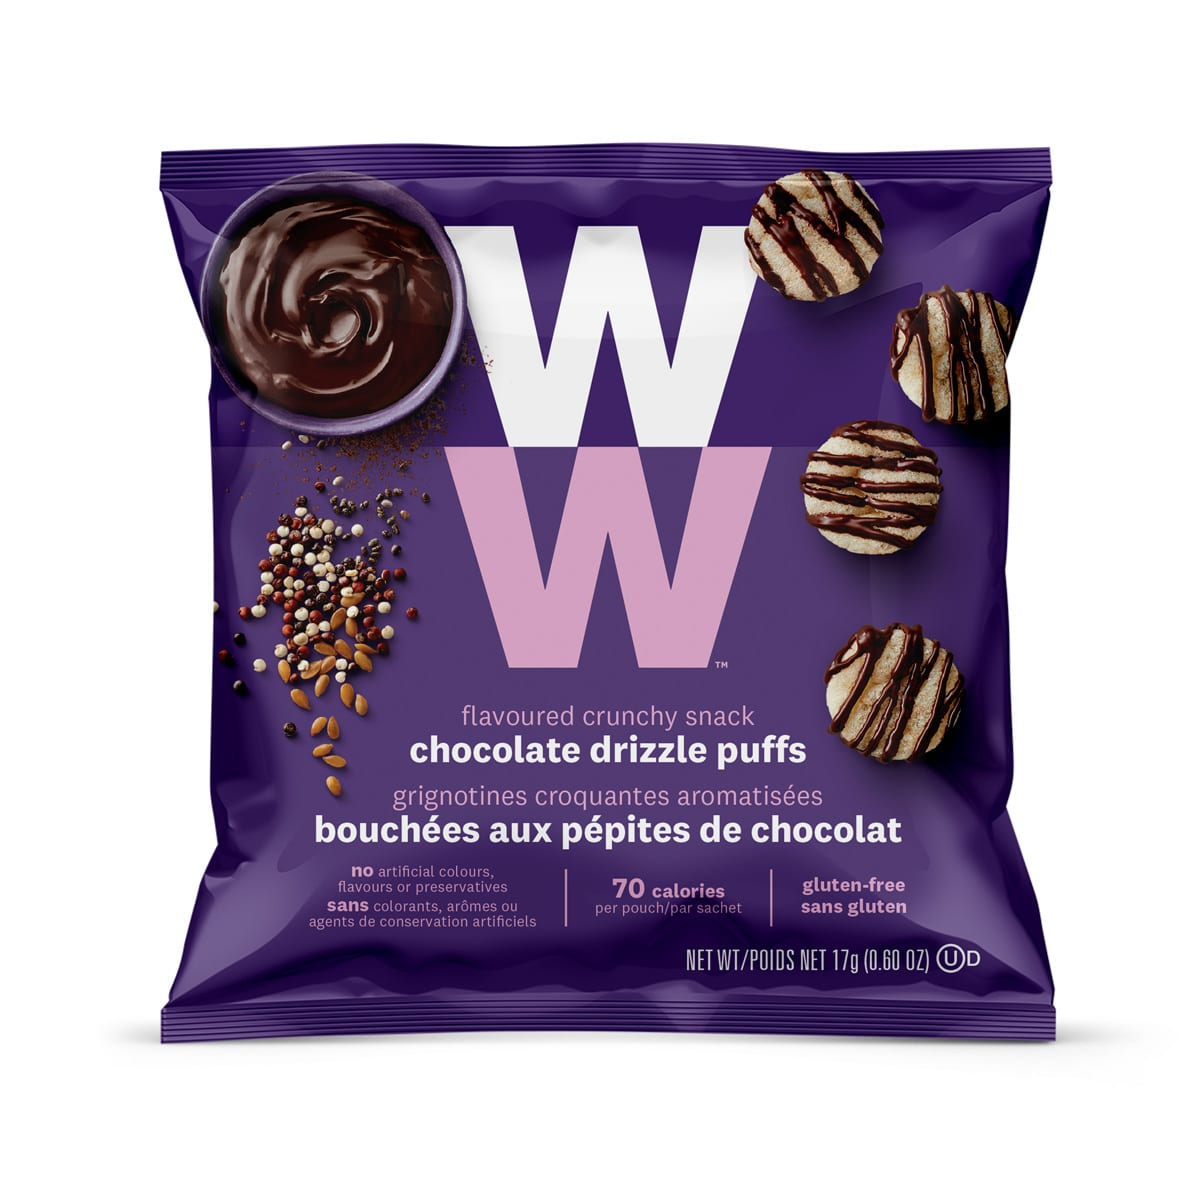 Chocolate Drizzle Puffs - front of the pouch